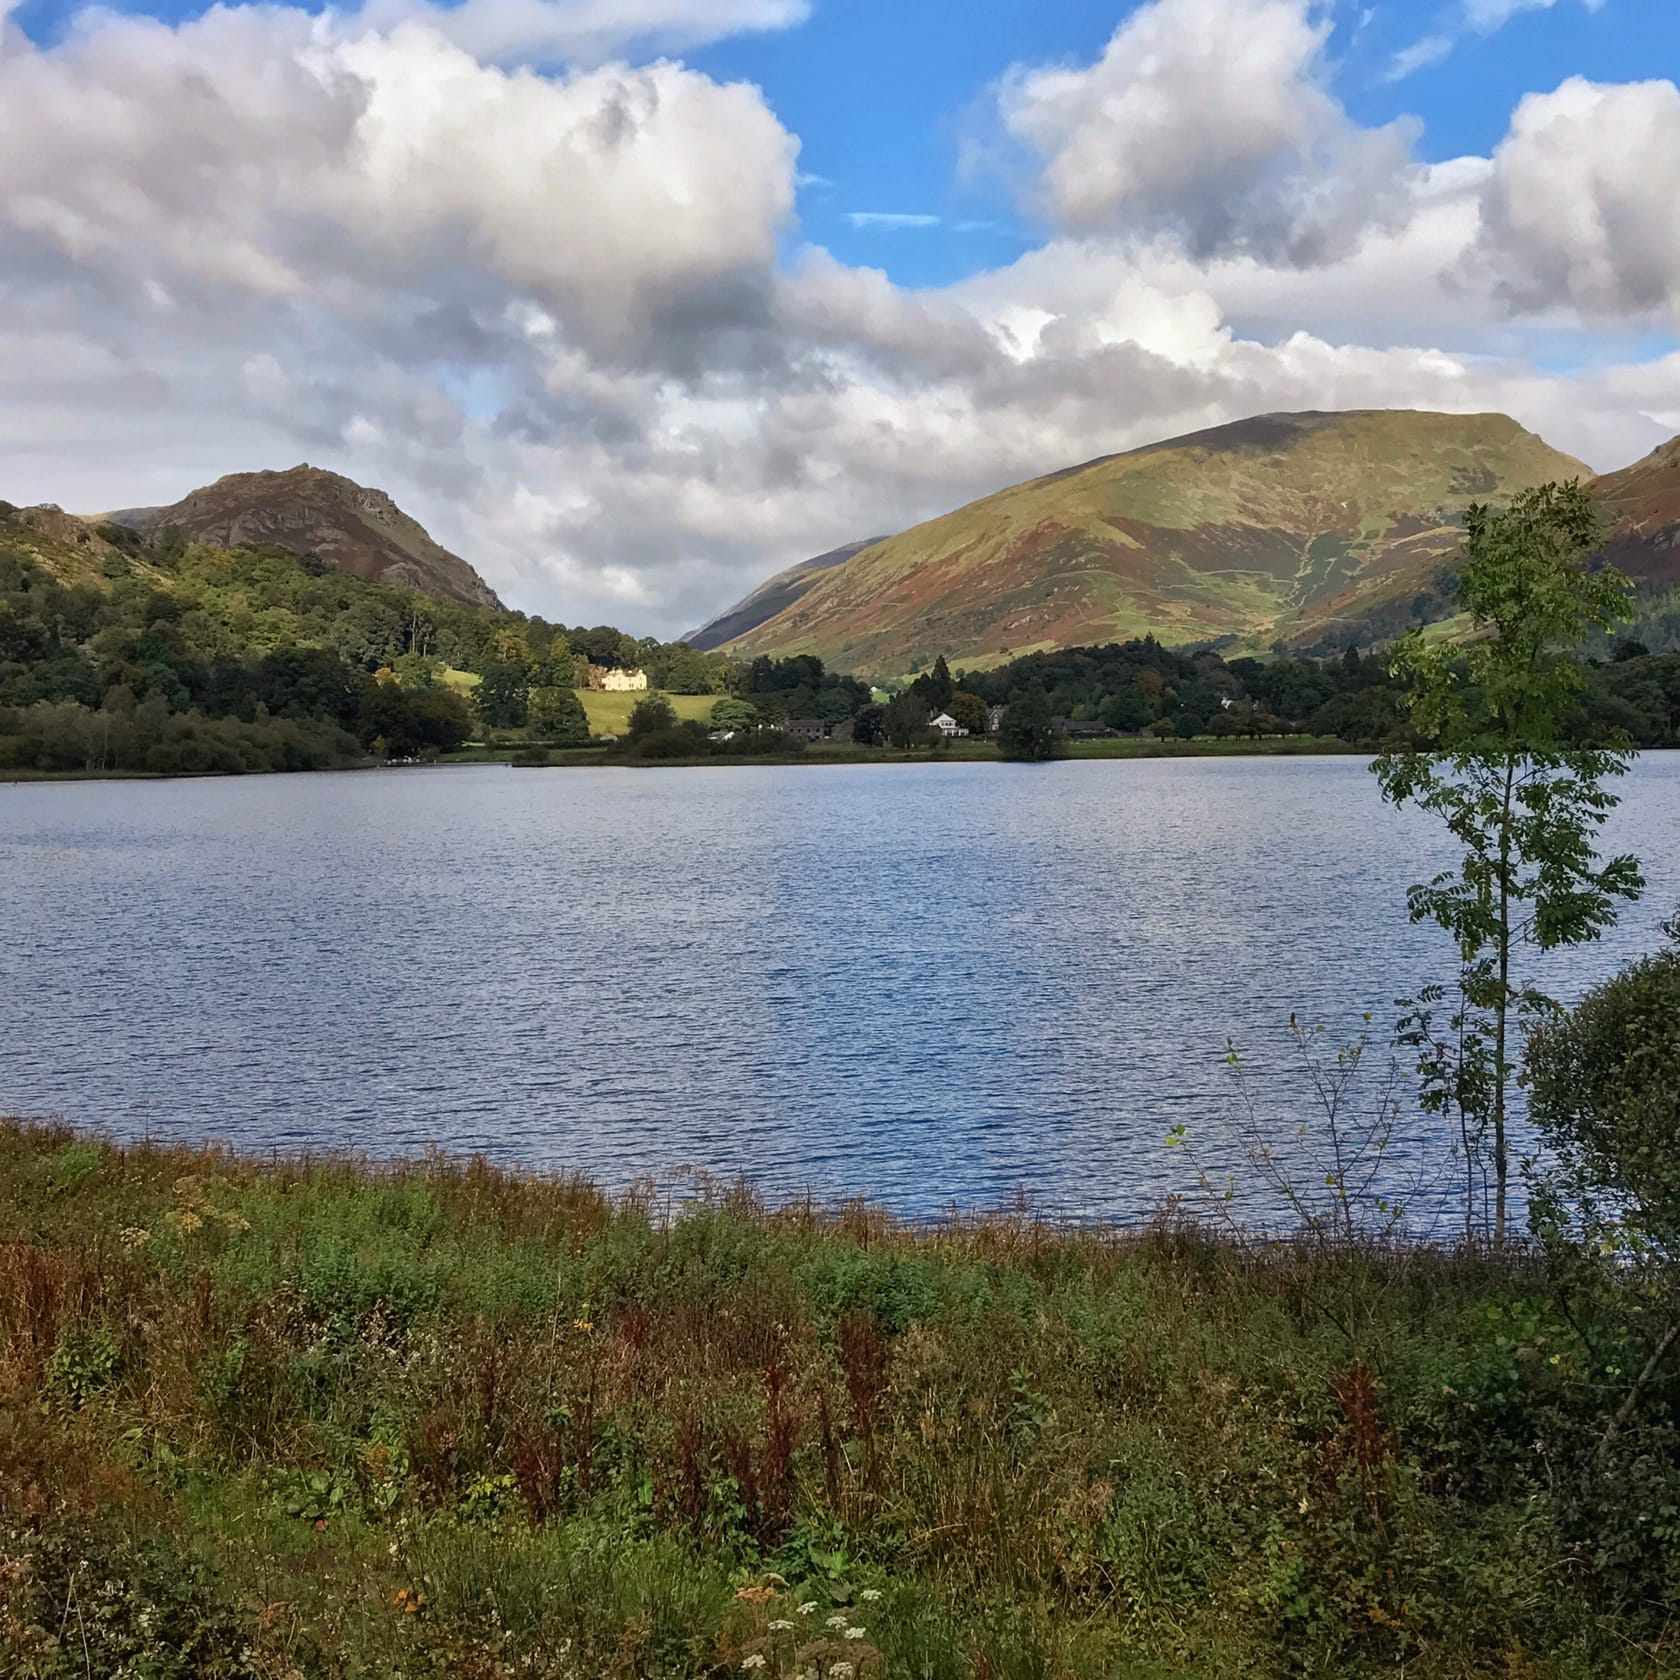 A view across Grasmere lake on a blue sky and puffy clouds day, with Helm Crag on the left and Seat Sandal on the right